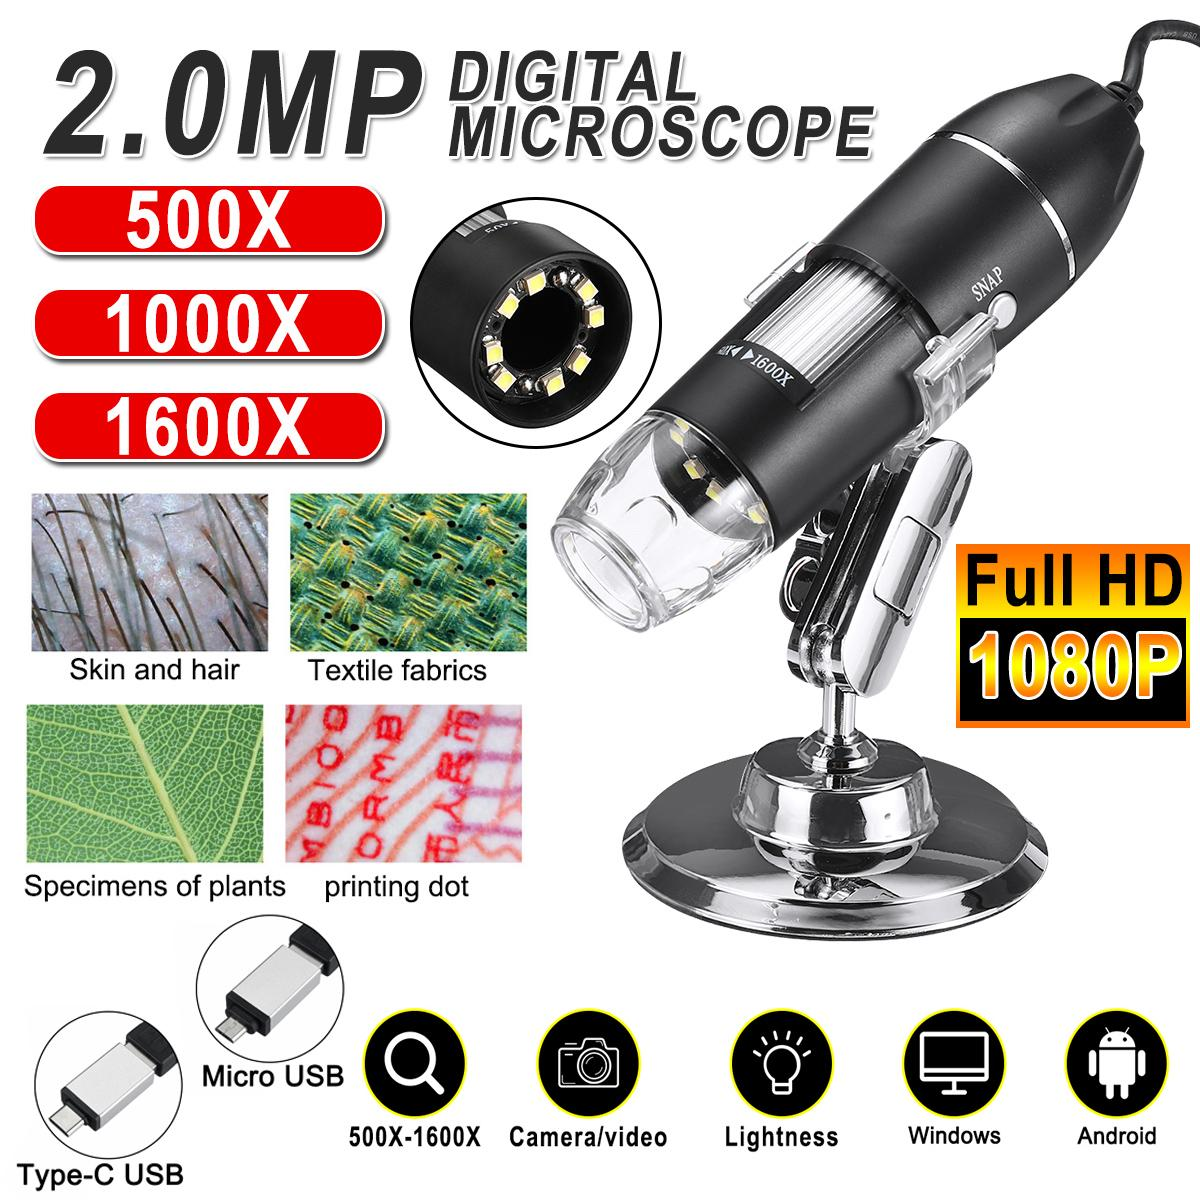 Microscopio digitale a LED regolabile da 1600x da 2MP 1080p 8 Type-C / micro USB Magnifier Electronic Stereo Stereo Endoscope per PC PC